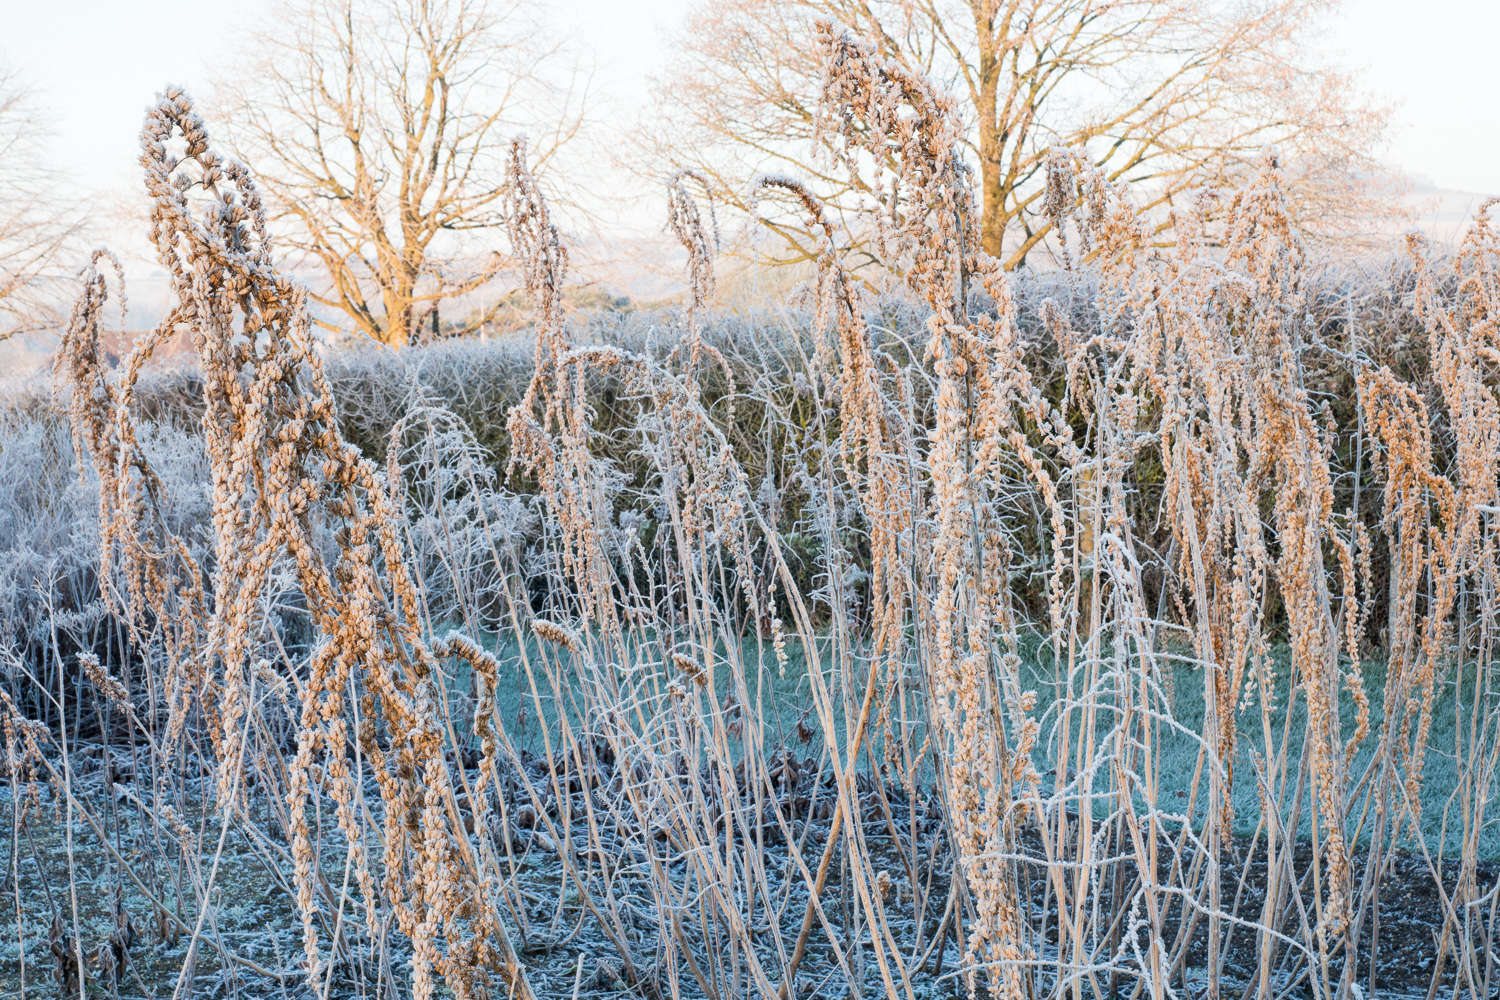 Frosted seed heads of Datisca cannabina